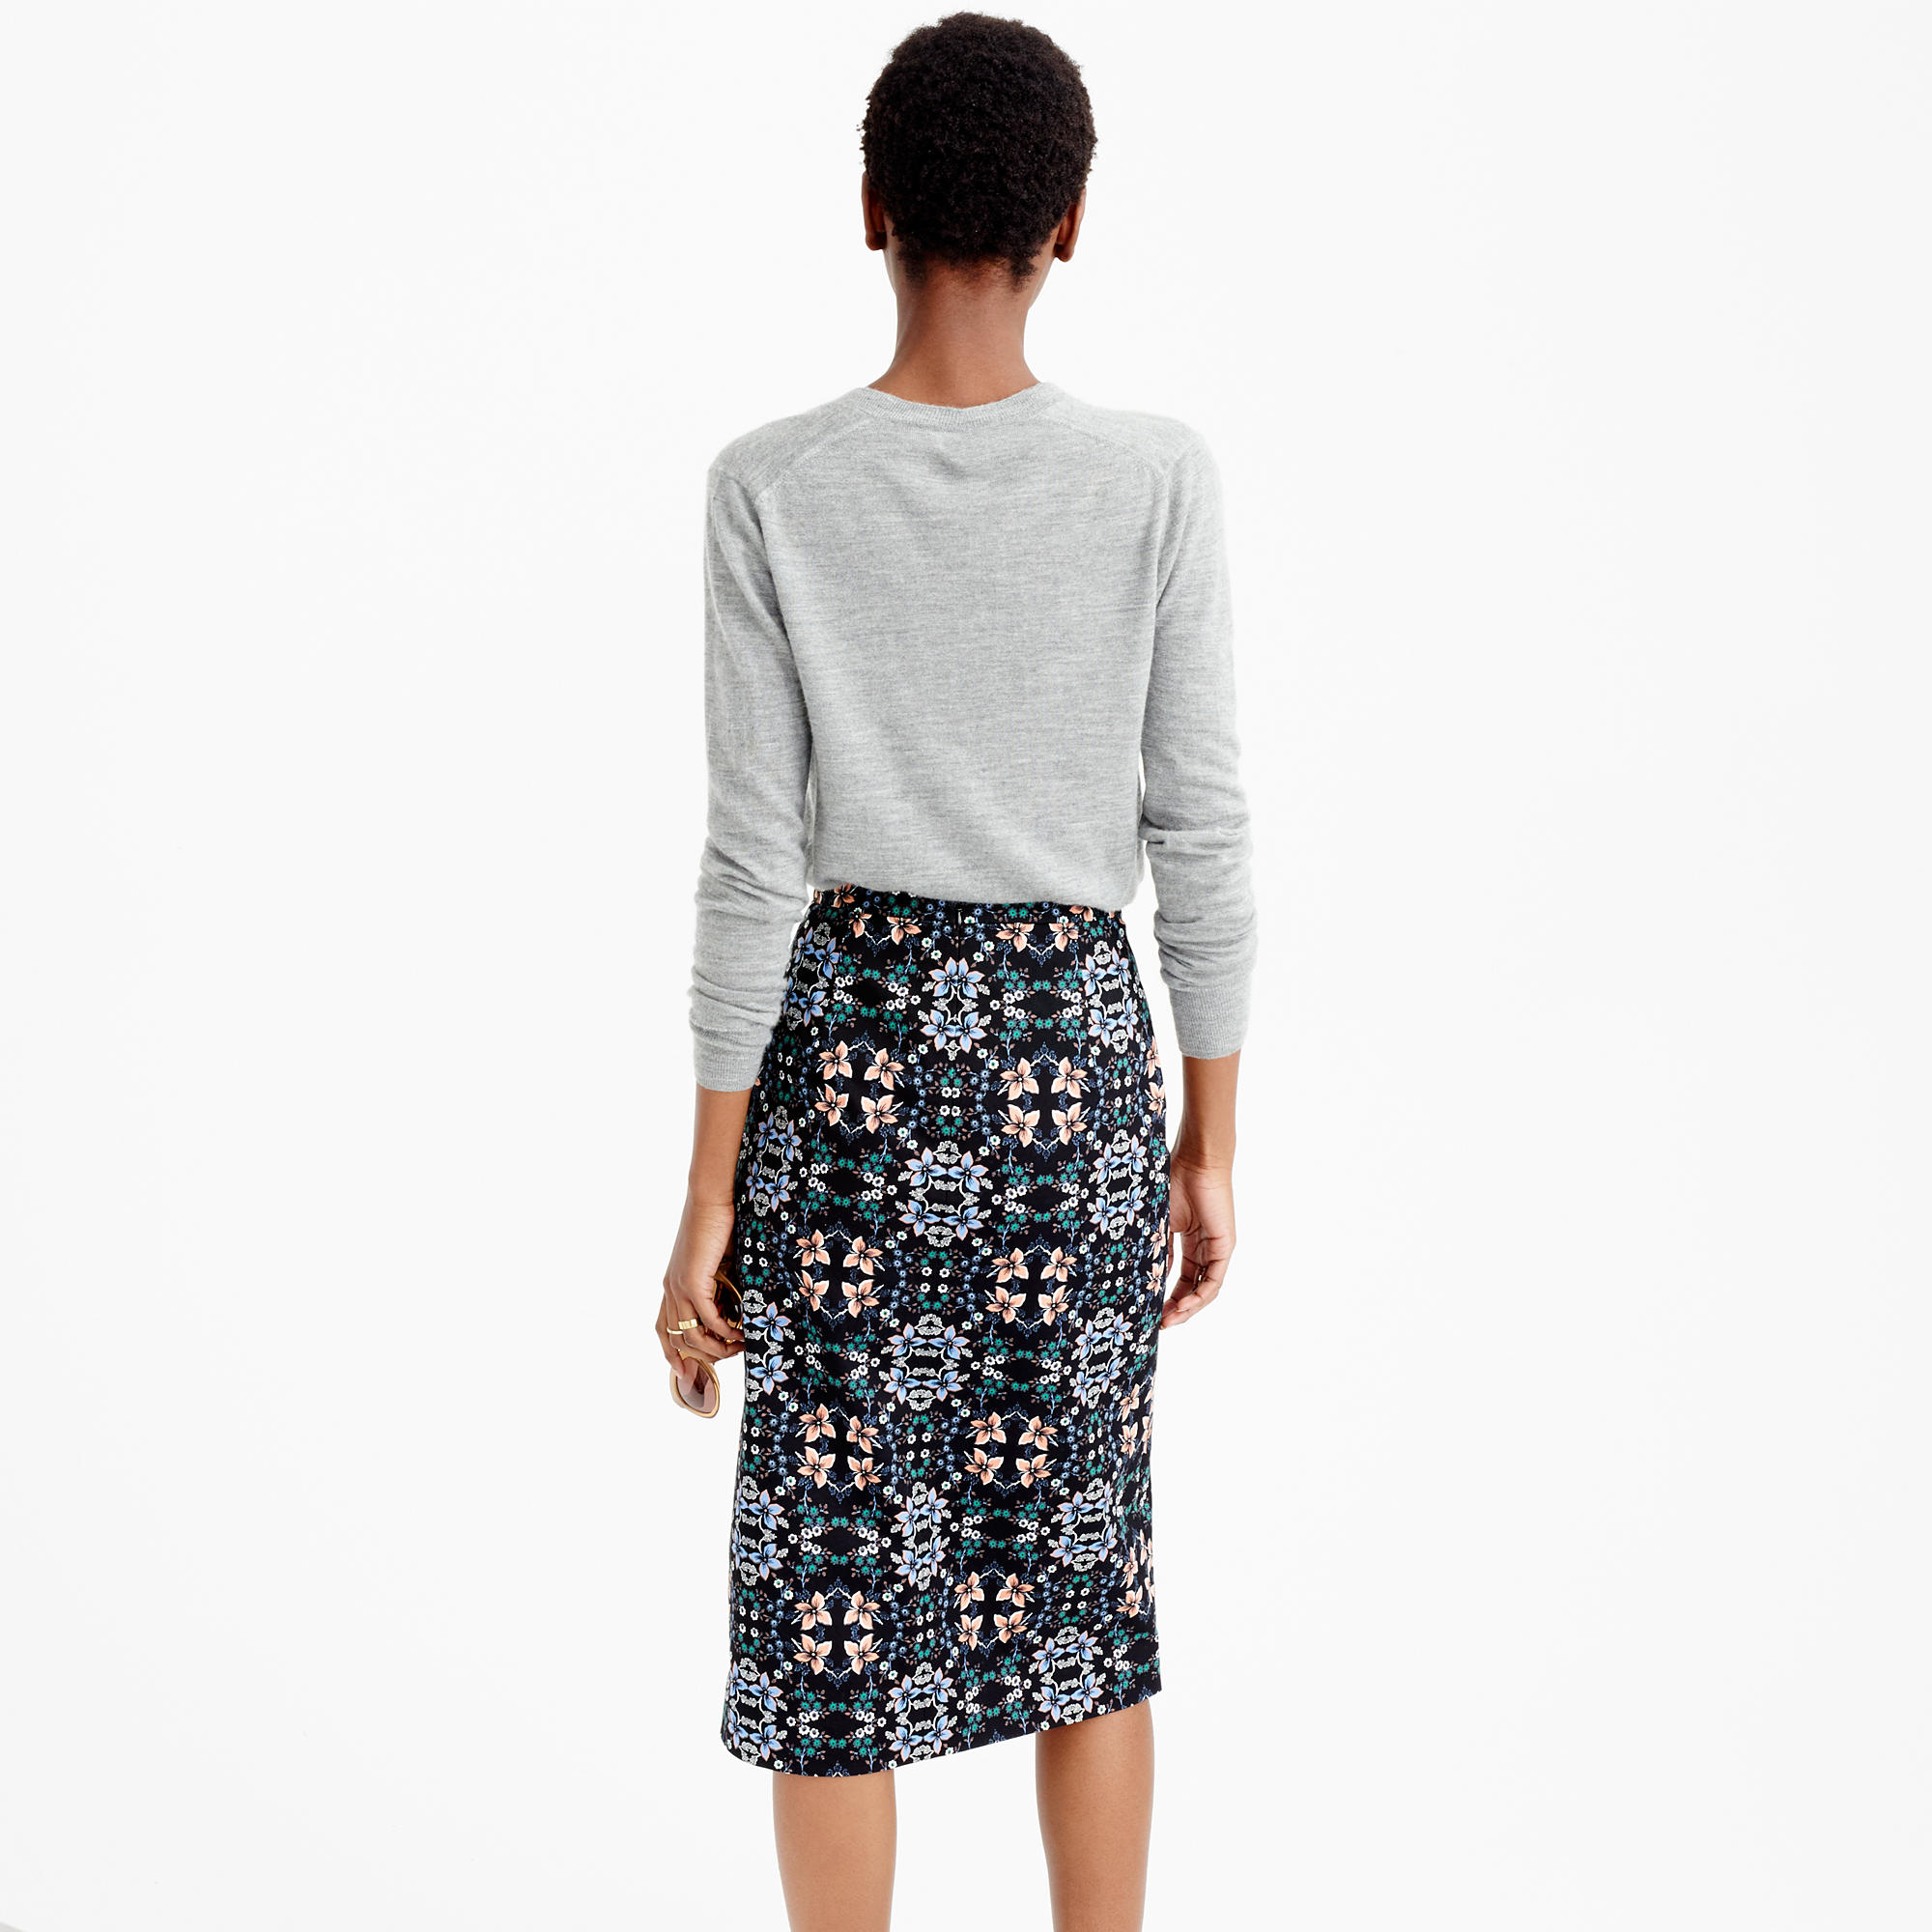 A-line midi skirt in mirrored floral : | J.Crew